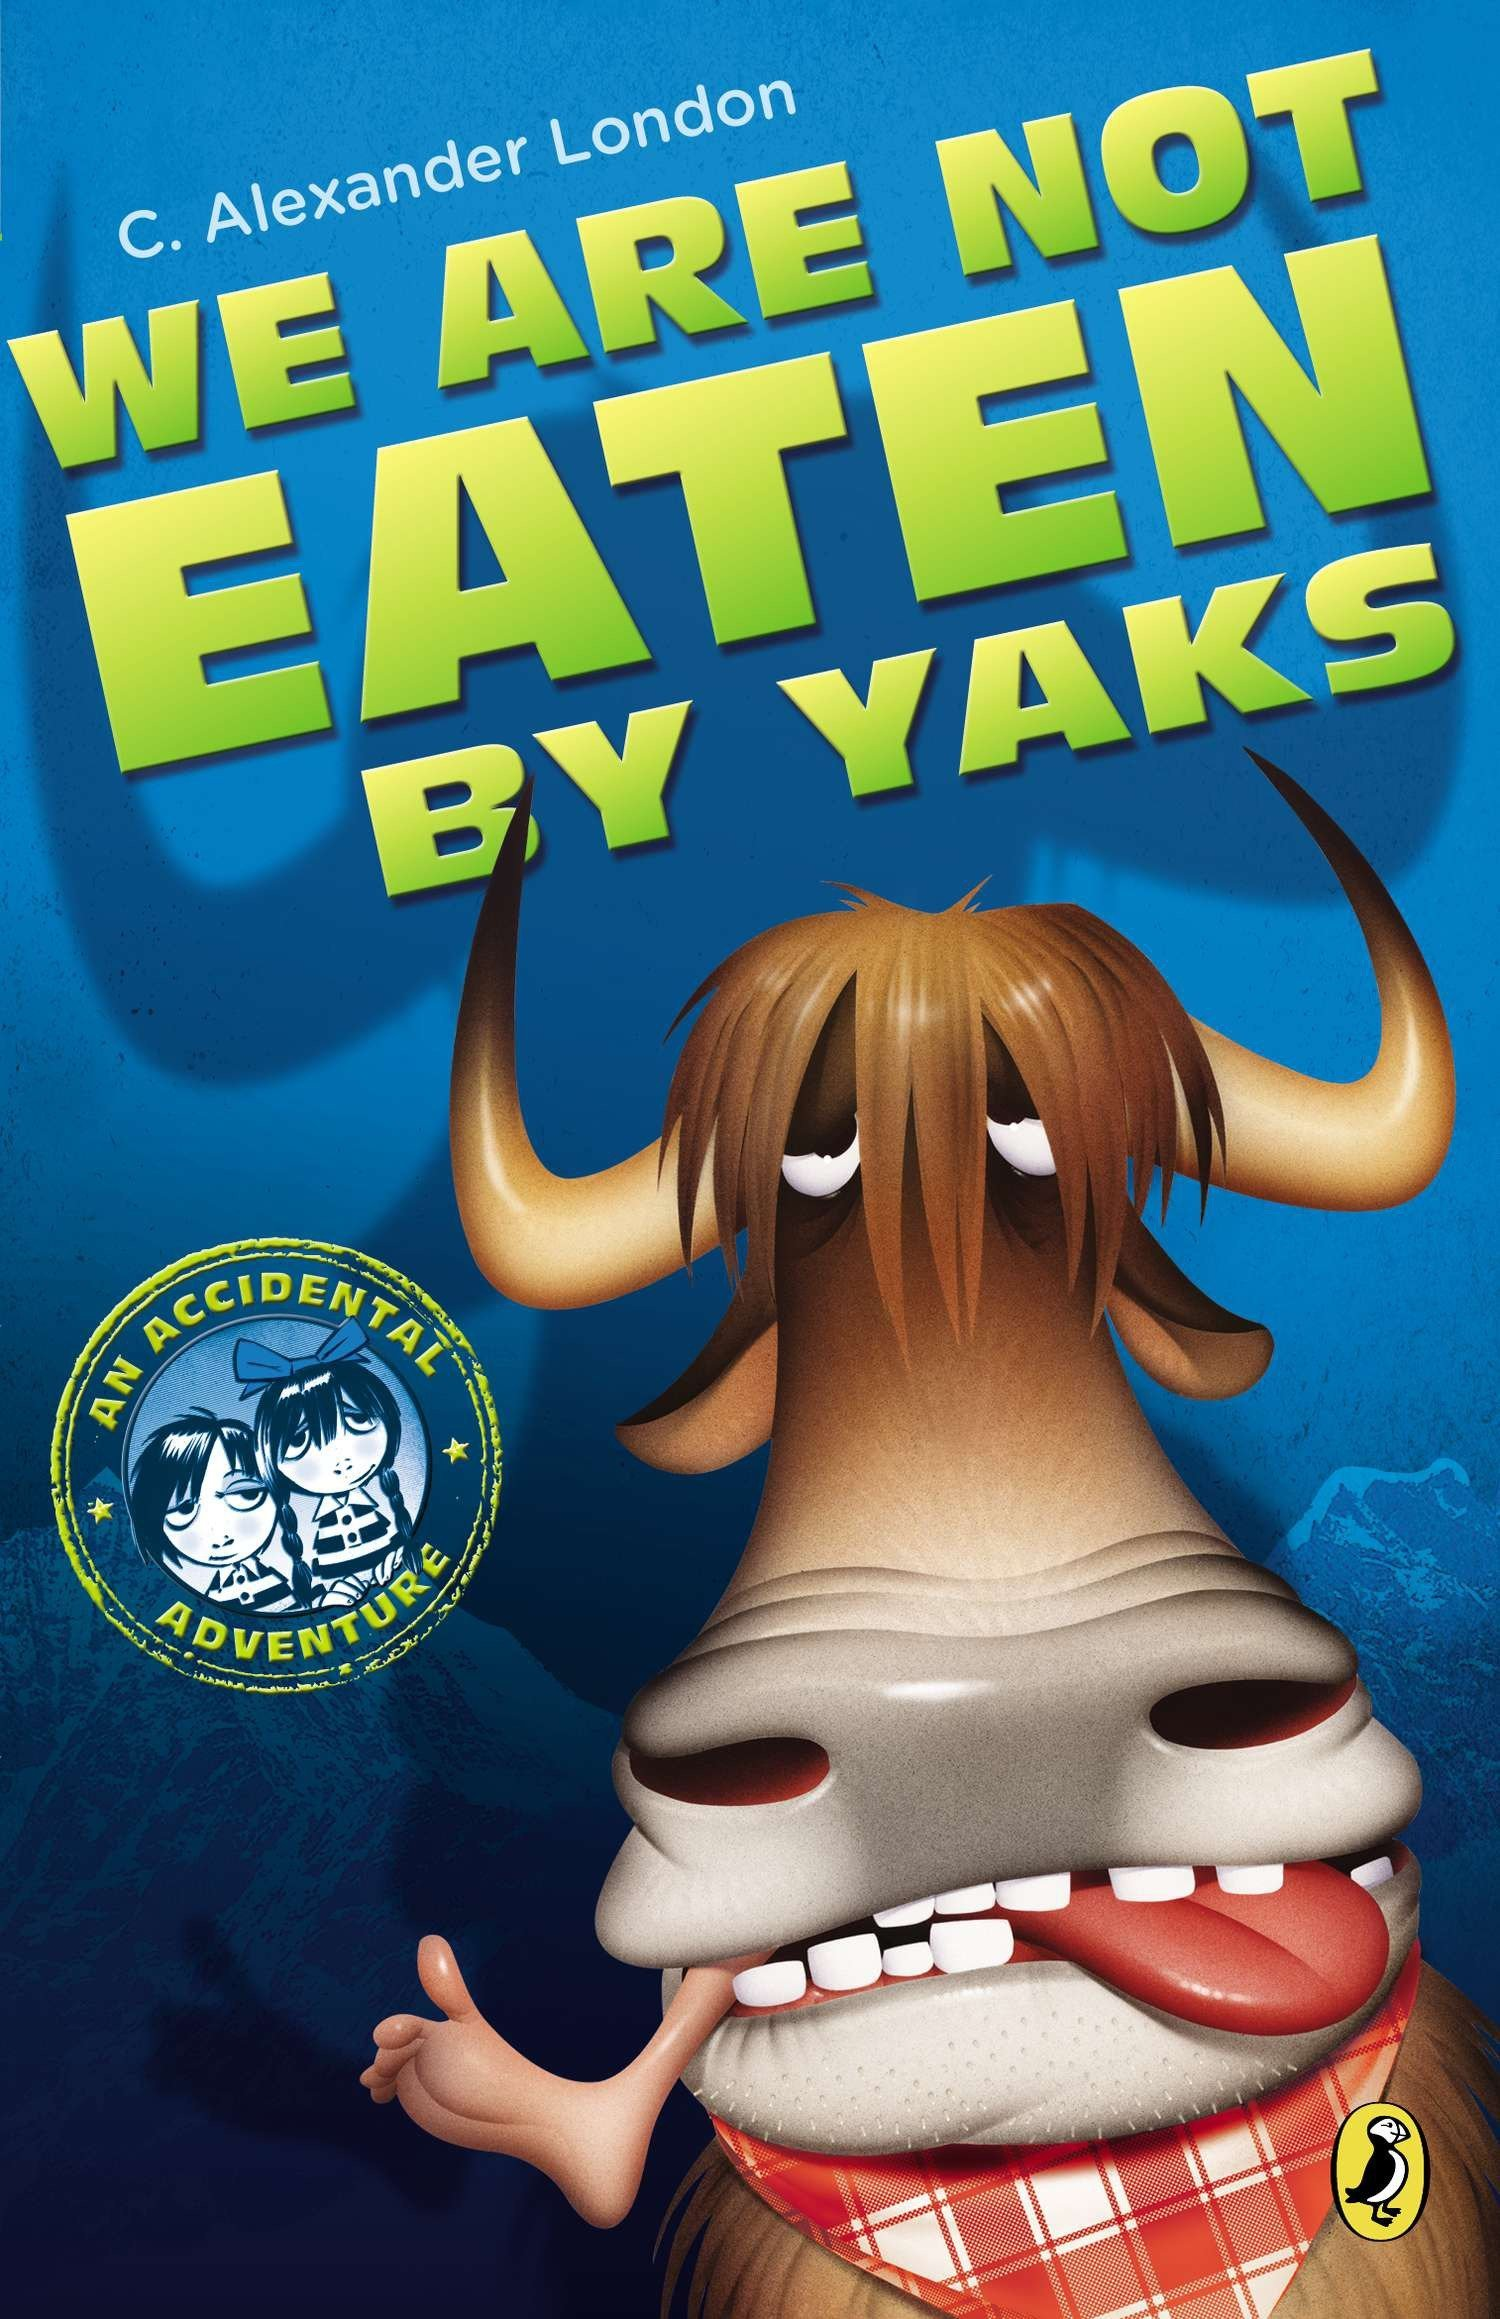 We Are Not Eaten by Yaks (An Accidental Adventure)